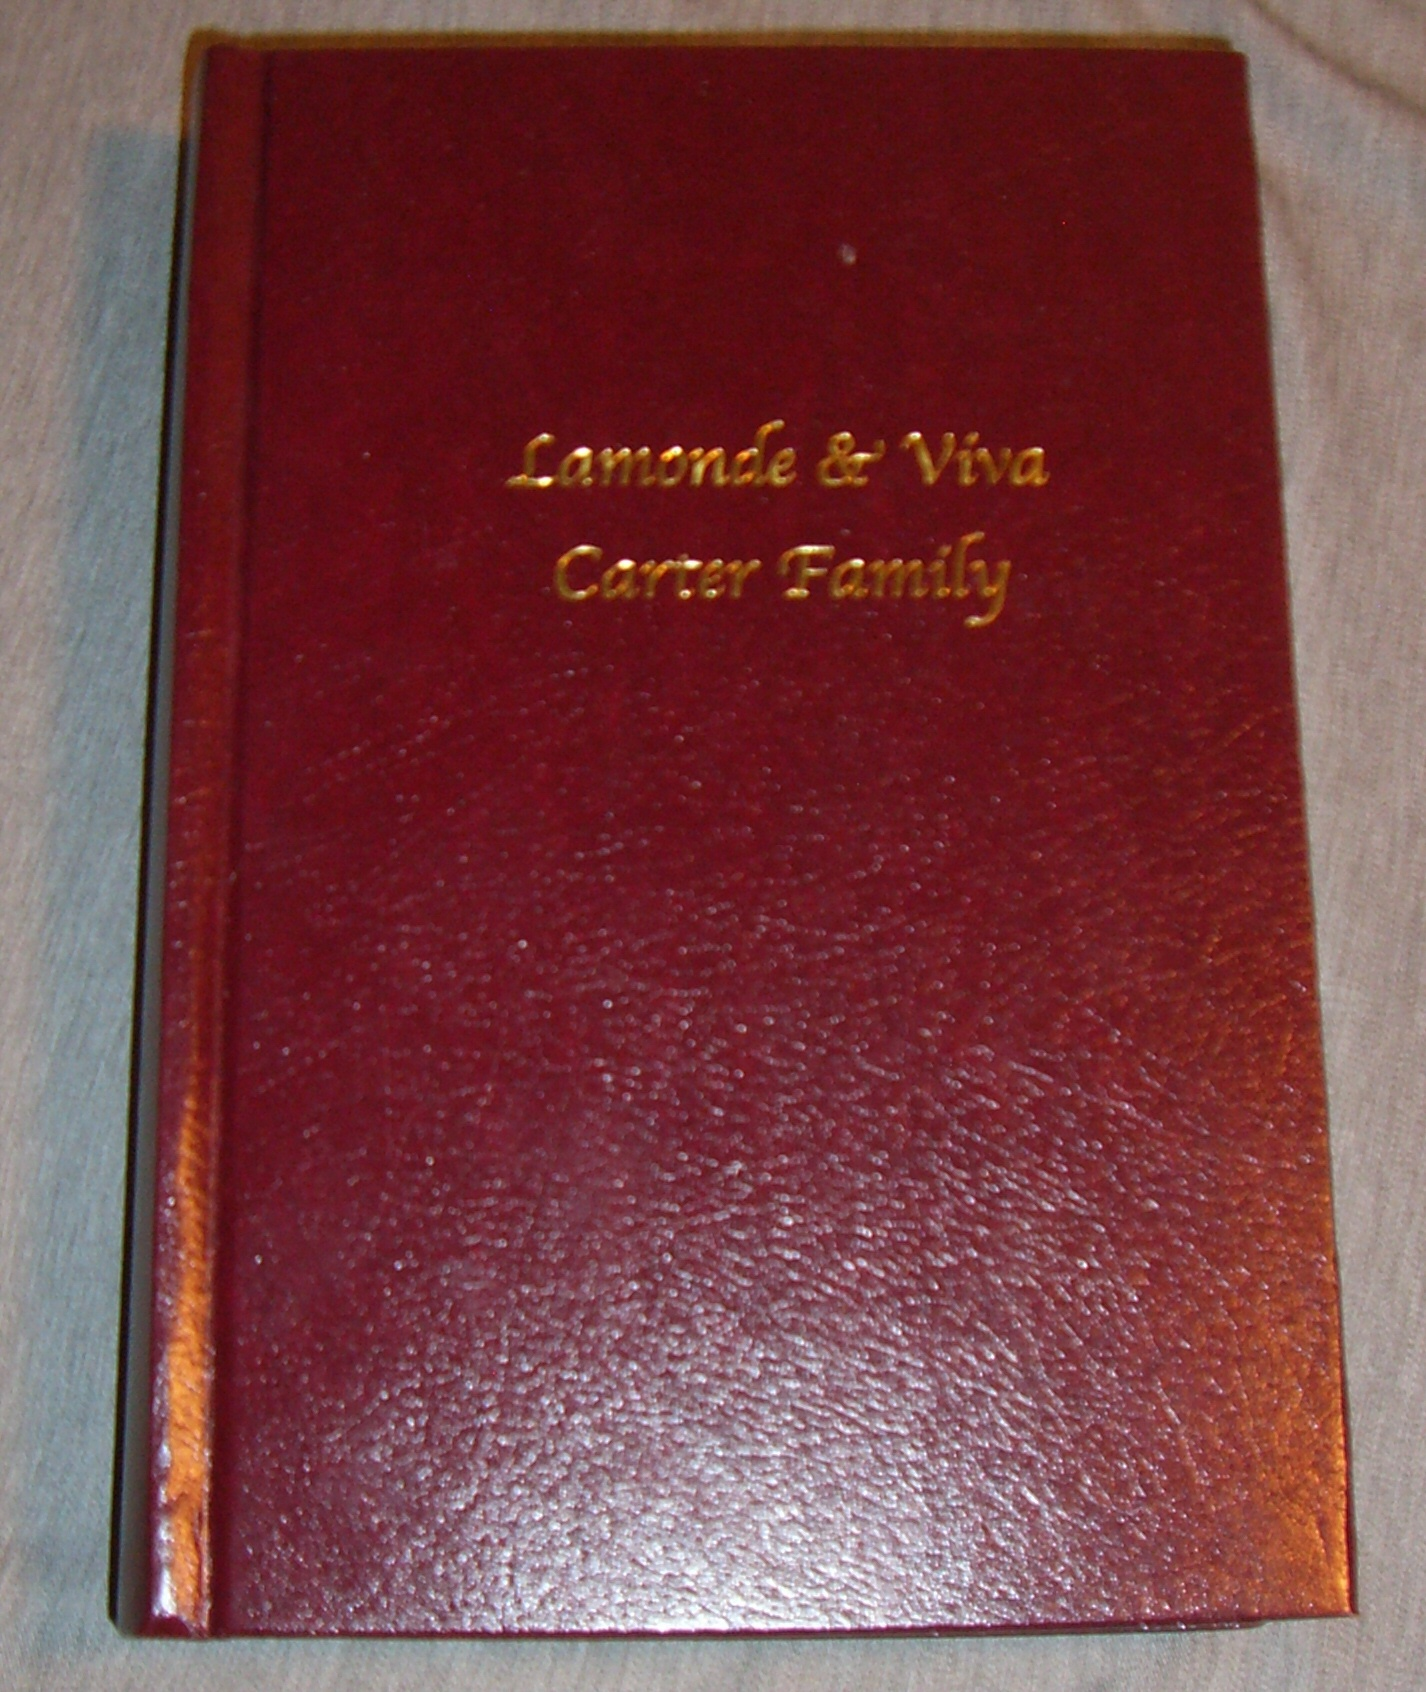 Lamonde & Viva Carter Family